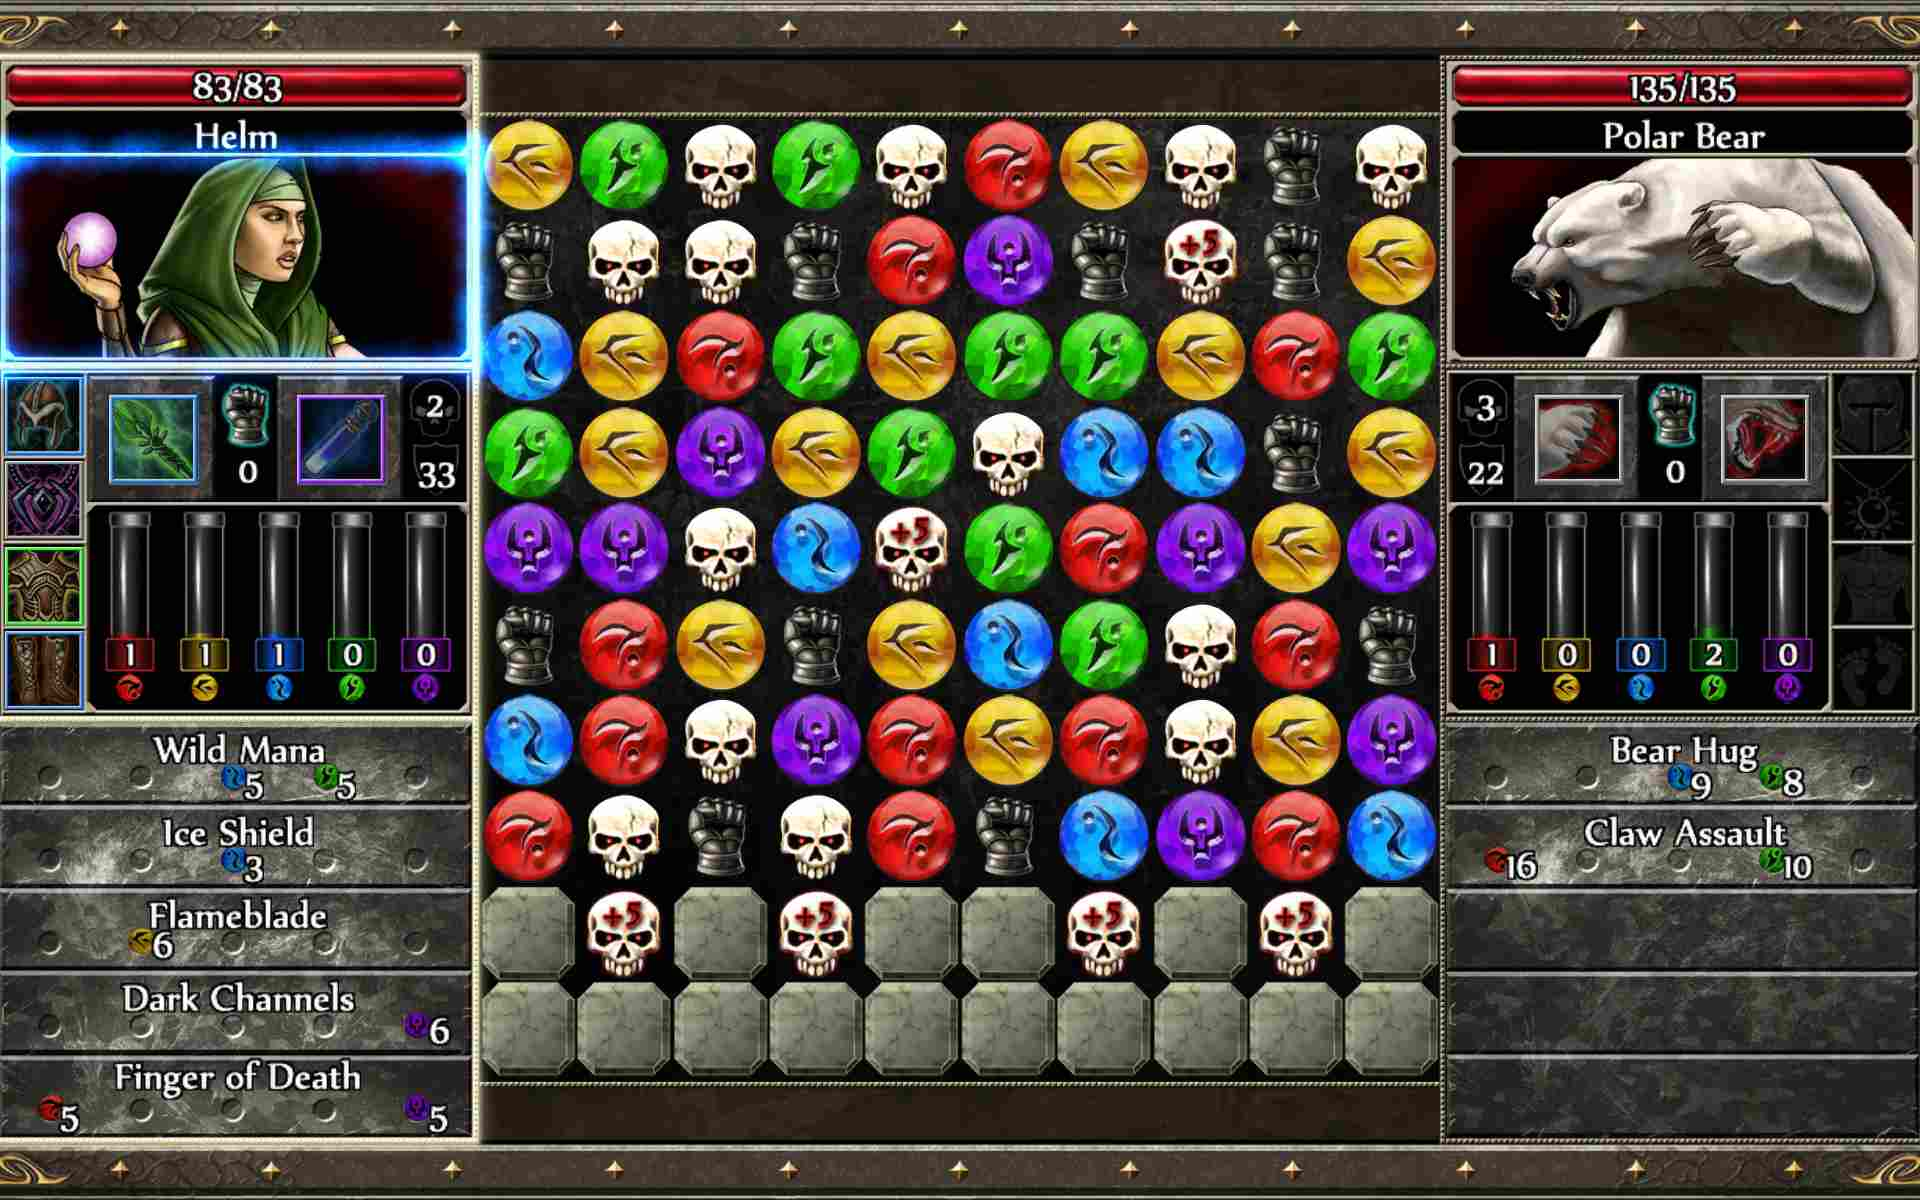 Screenshot of Puzzle Quest gameplay